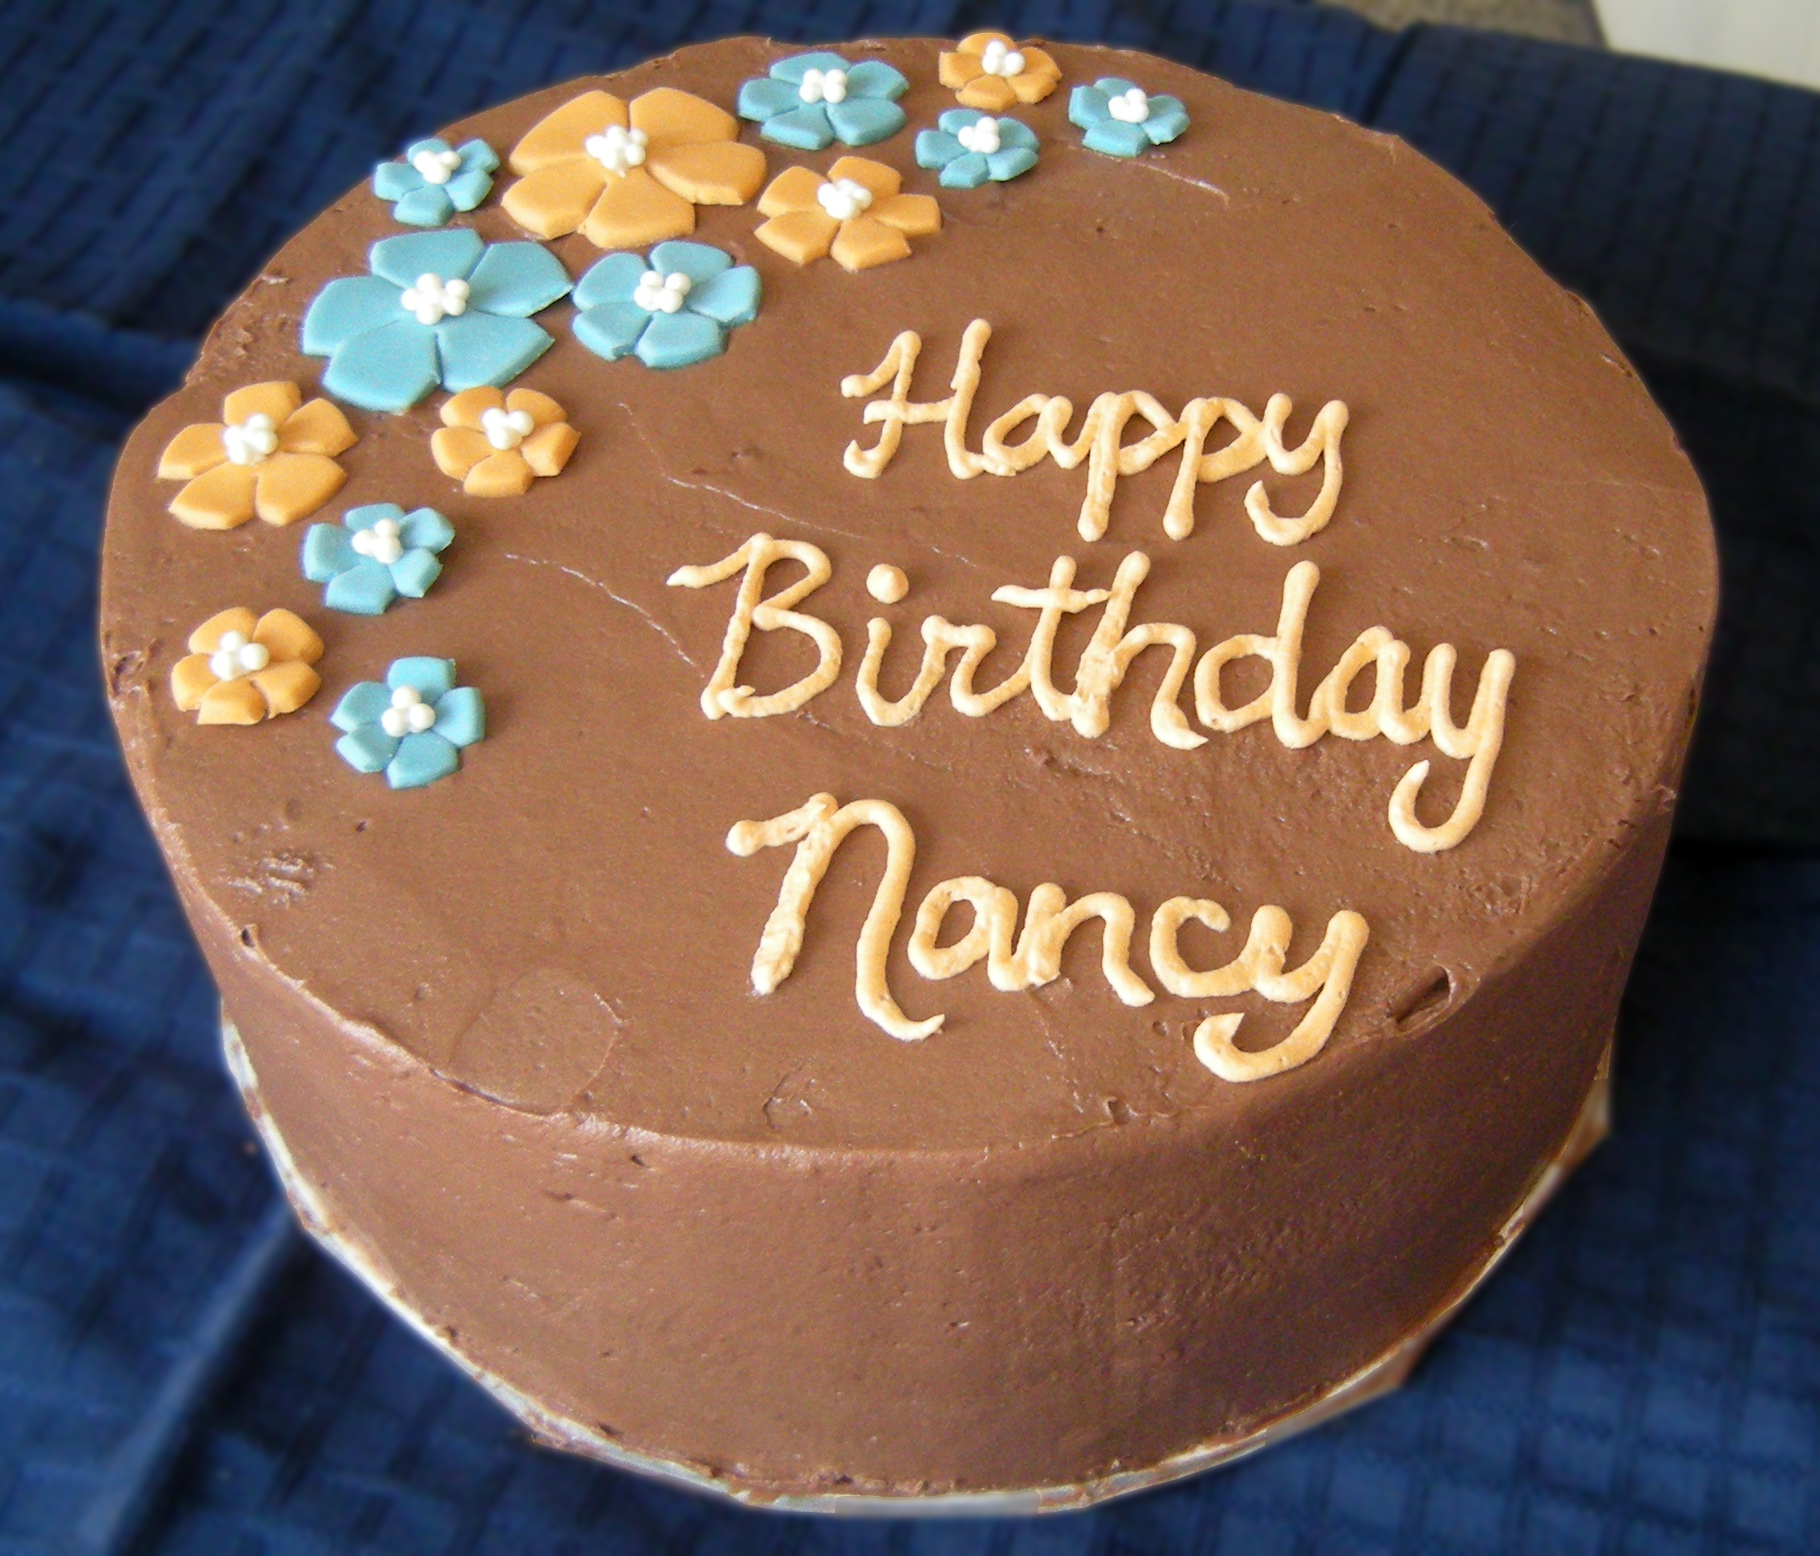 Related Keywords & Suggestions For Happy Birthday Nancy